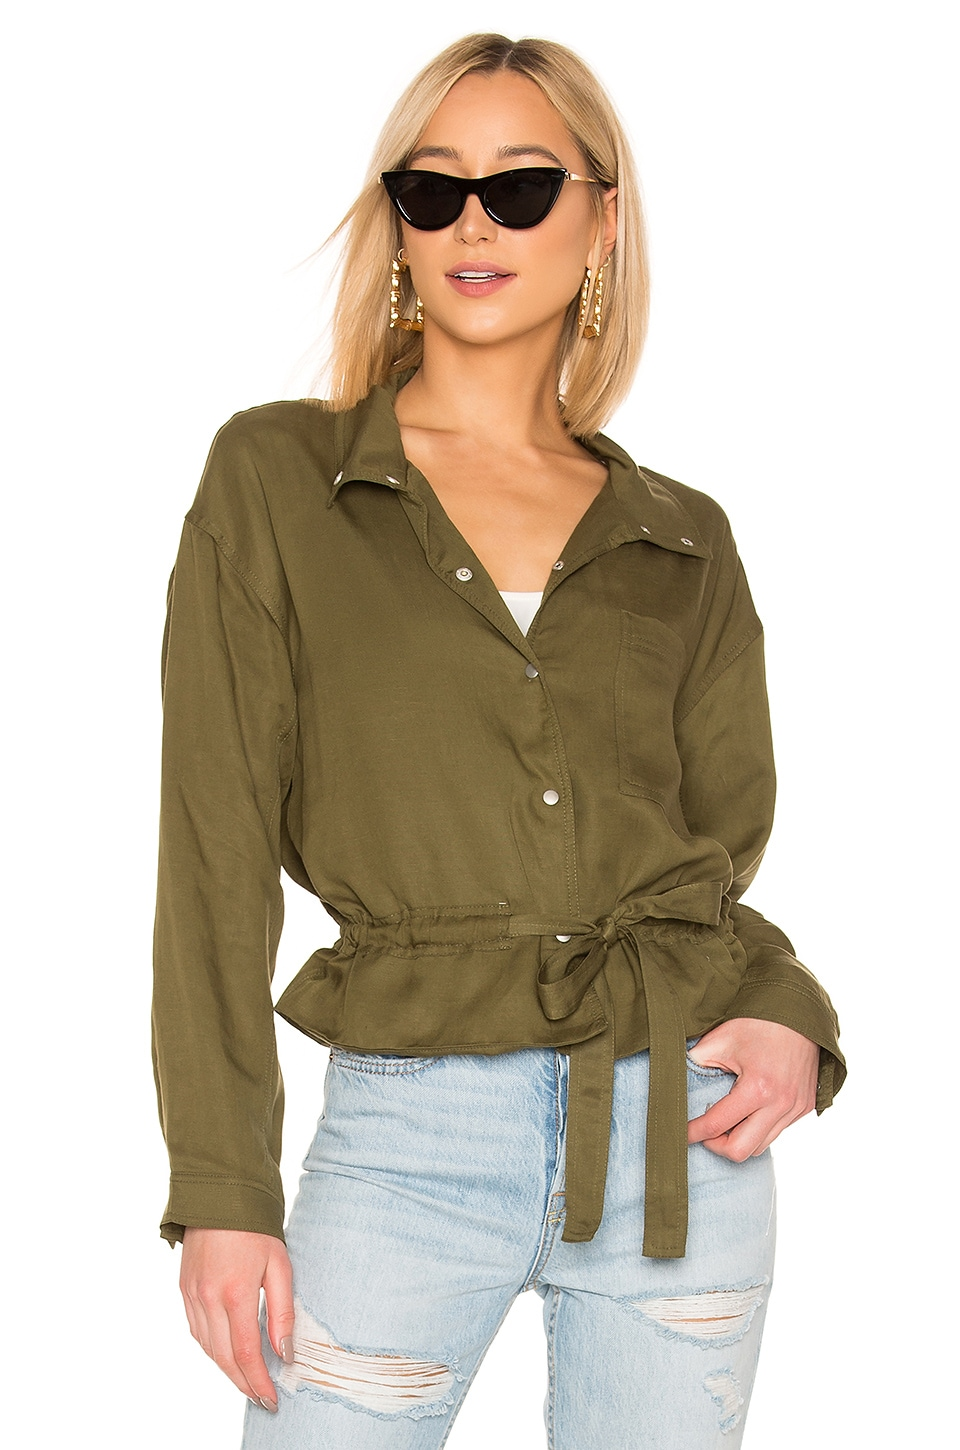 Tularosa Avery Jacket in Green